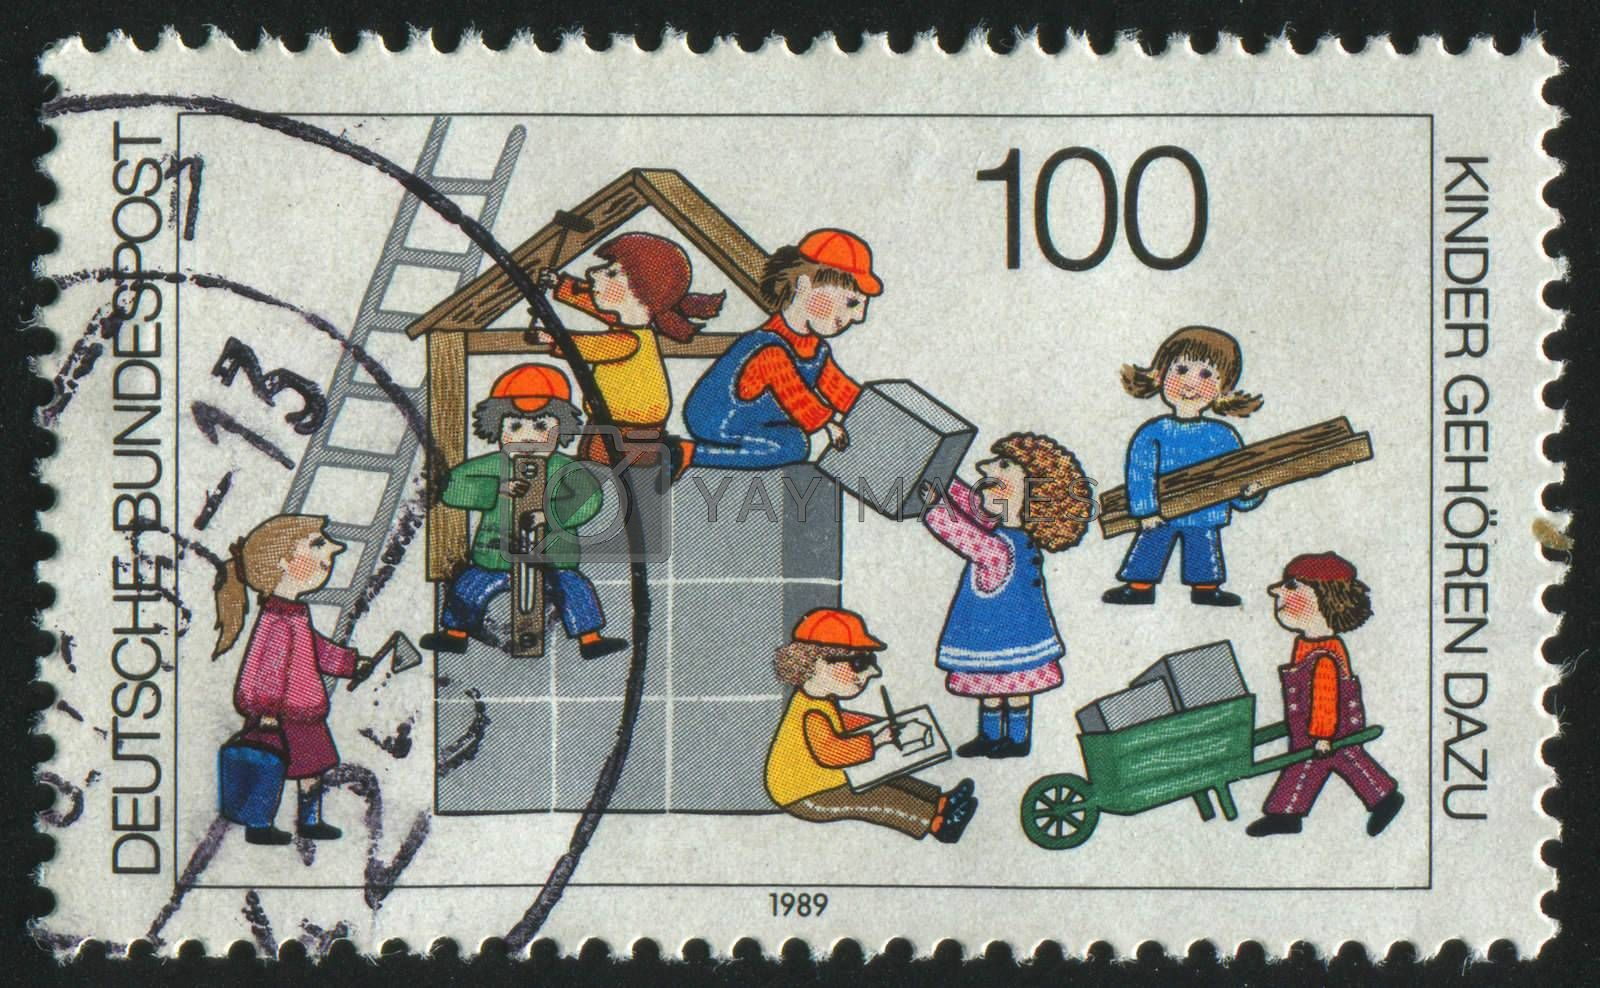 GERMANY  - CIRCA 1989: stamp printed by Germany, shows children, circa 1989.